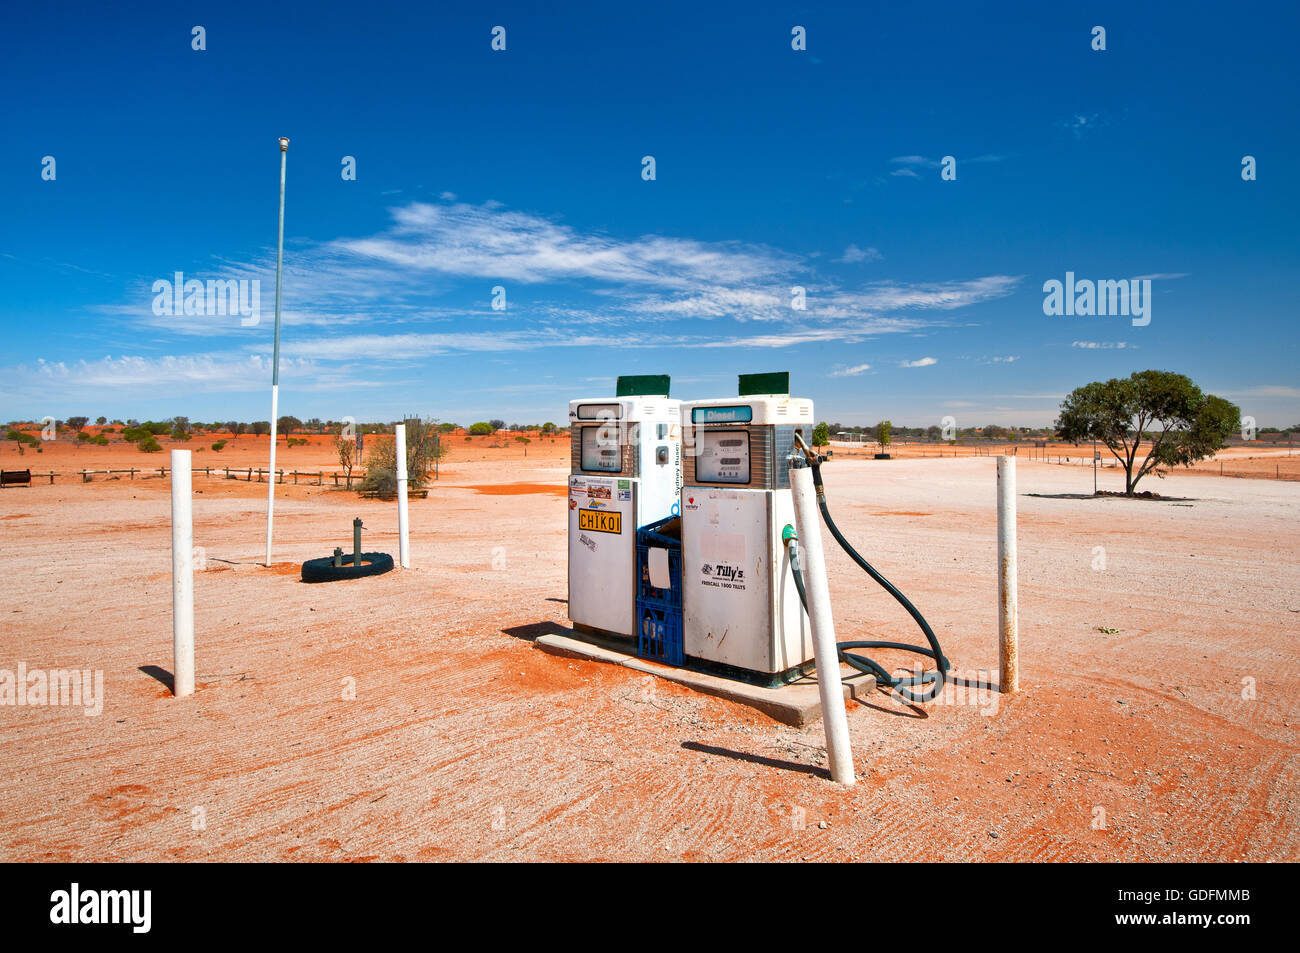 Fuel pumps of Cameron Corner Store in the middle of the desert. - Stock Image